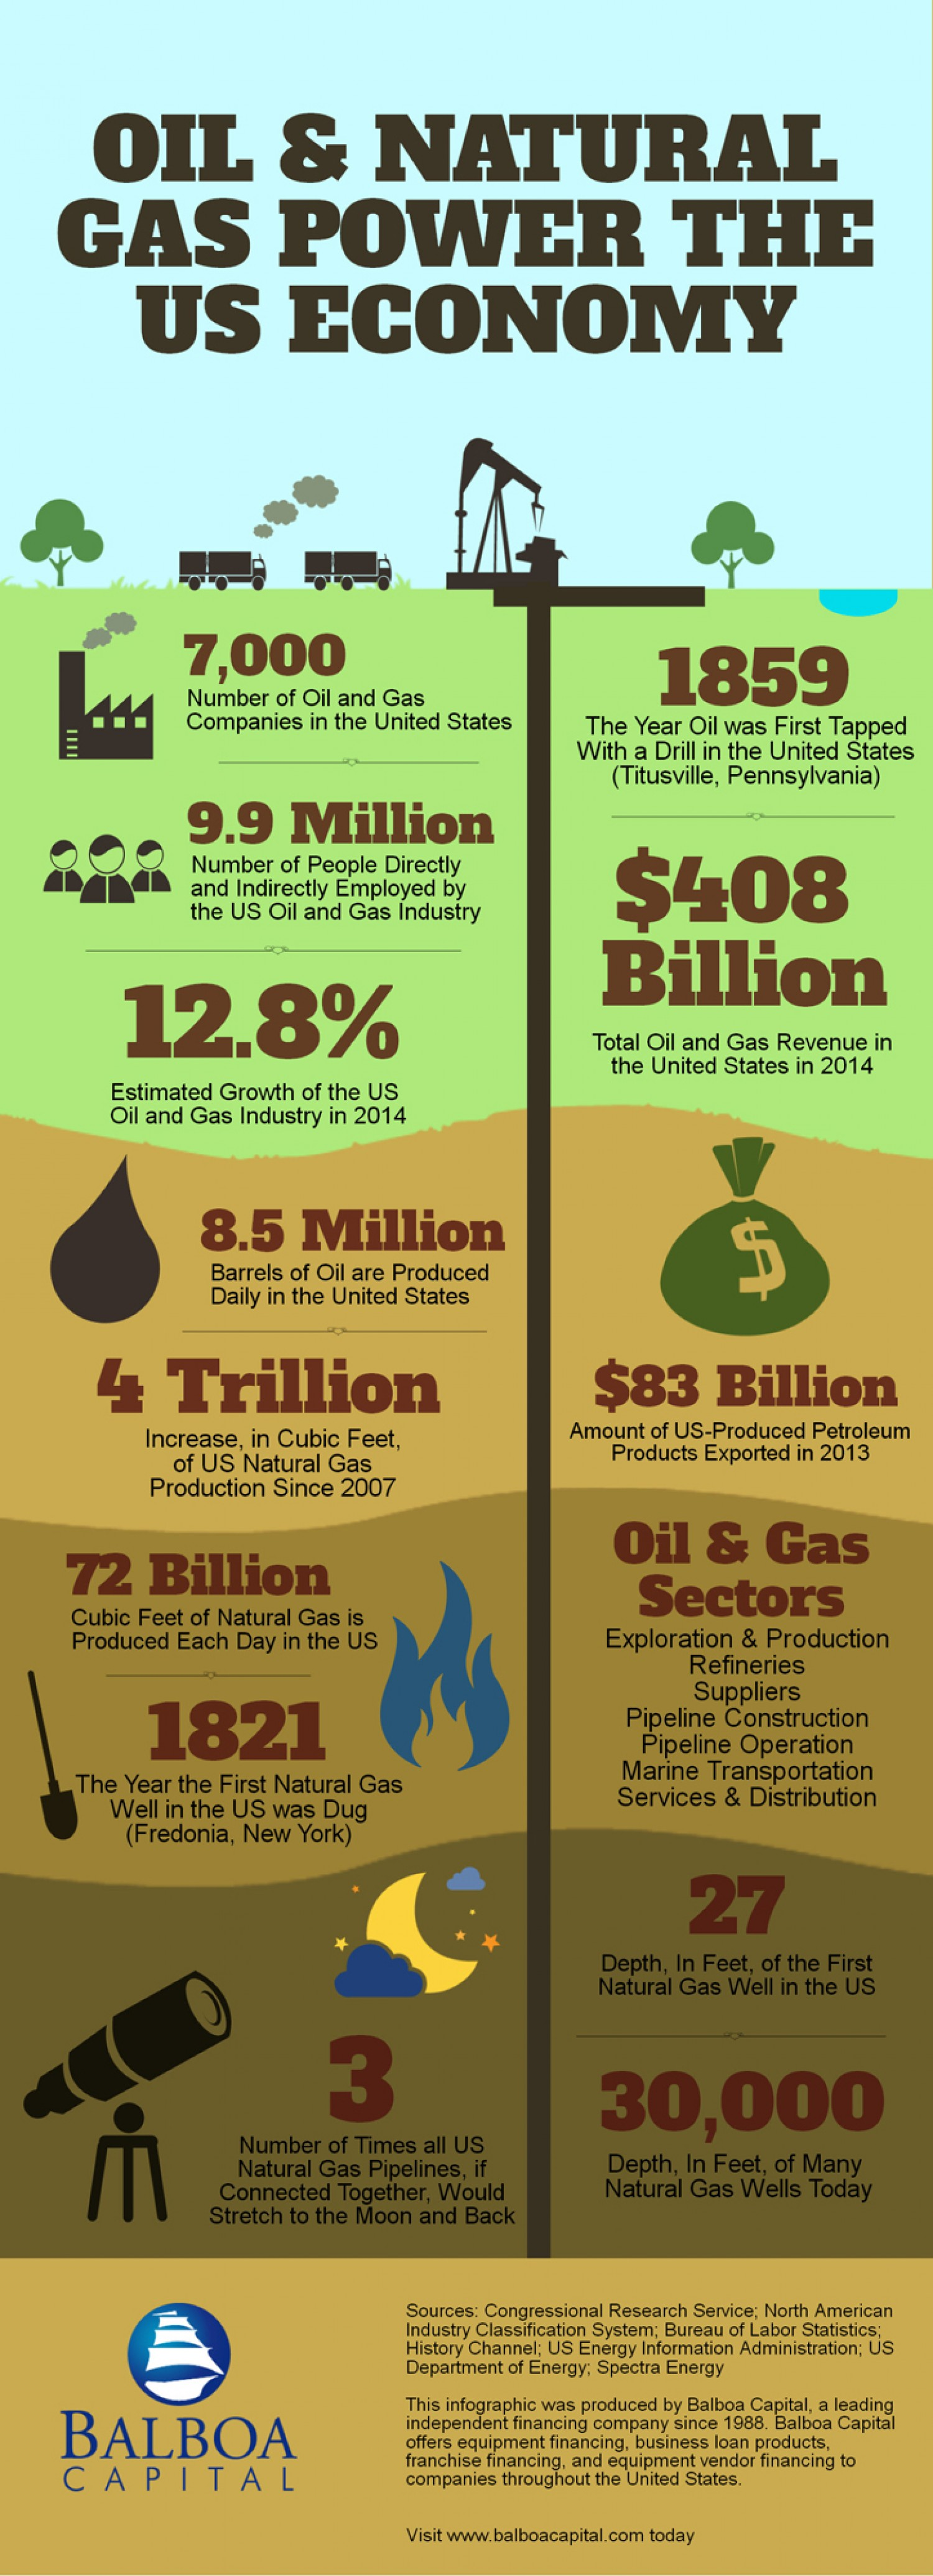 Oil And Gas Power The US Economy